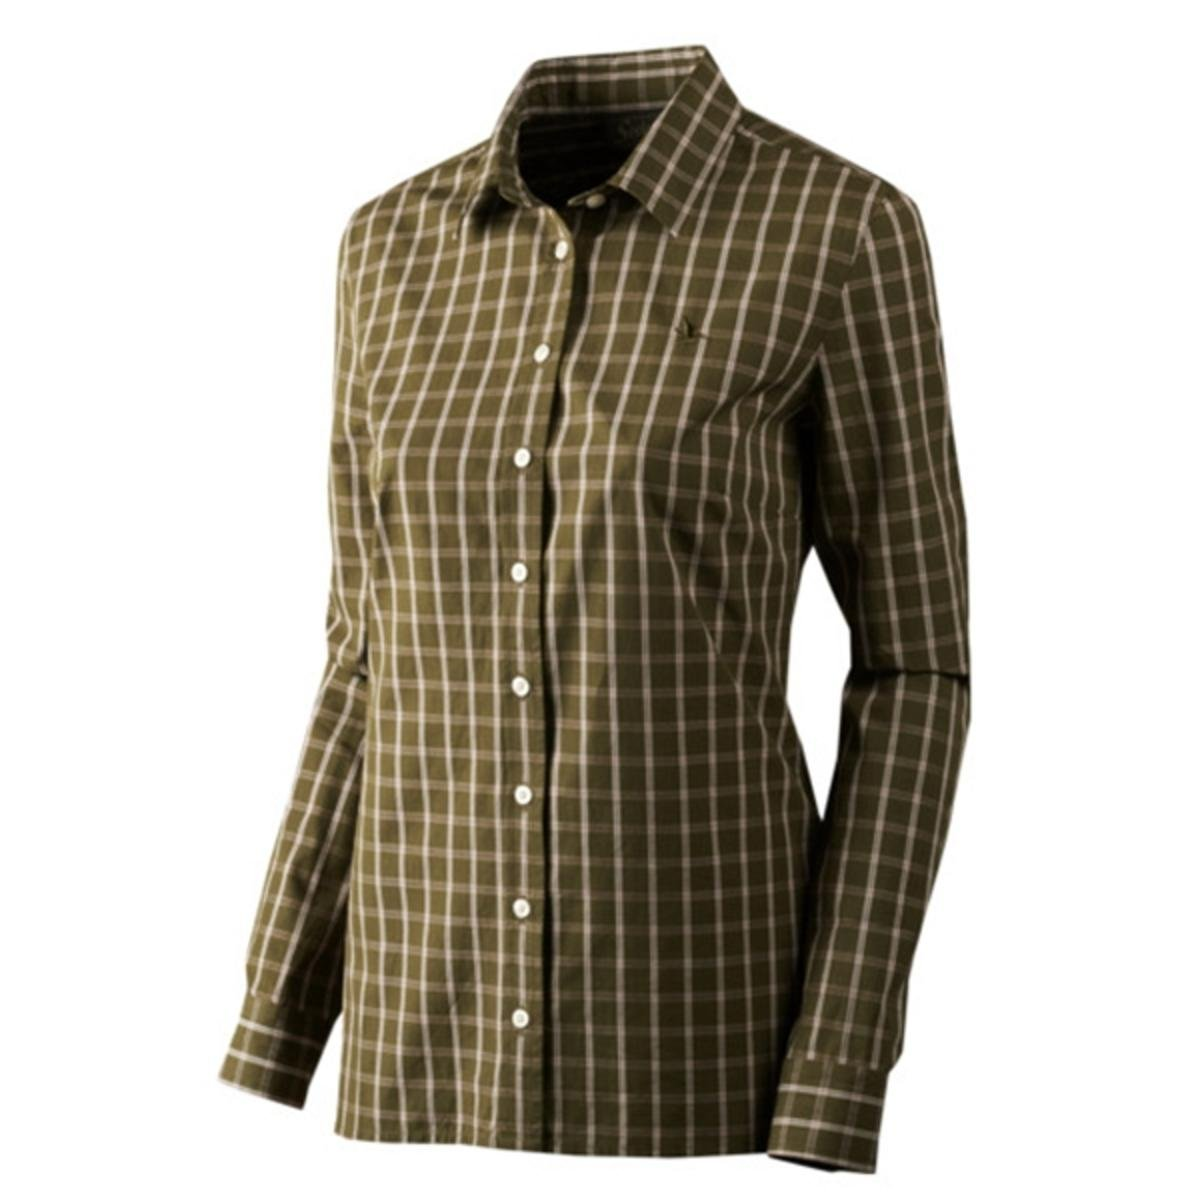 Seeland Beatrice Lady Shirt Primrose Check X-Small Green by Seeland (Image #1)